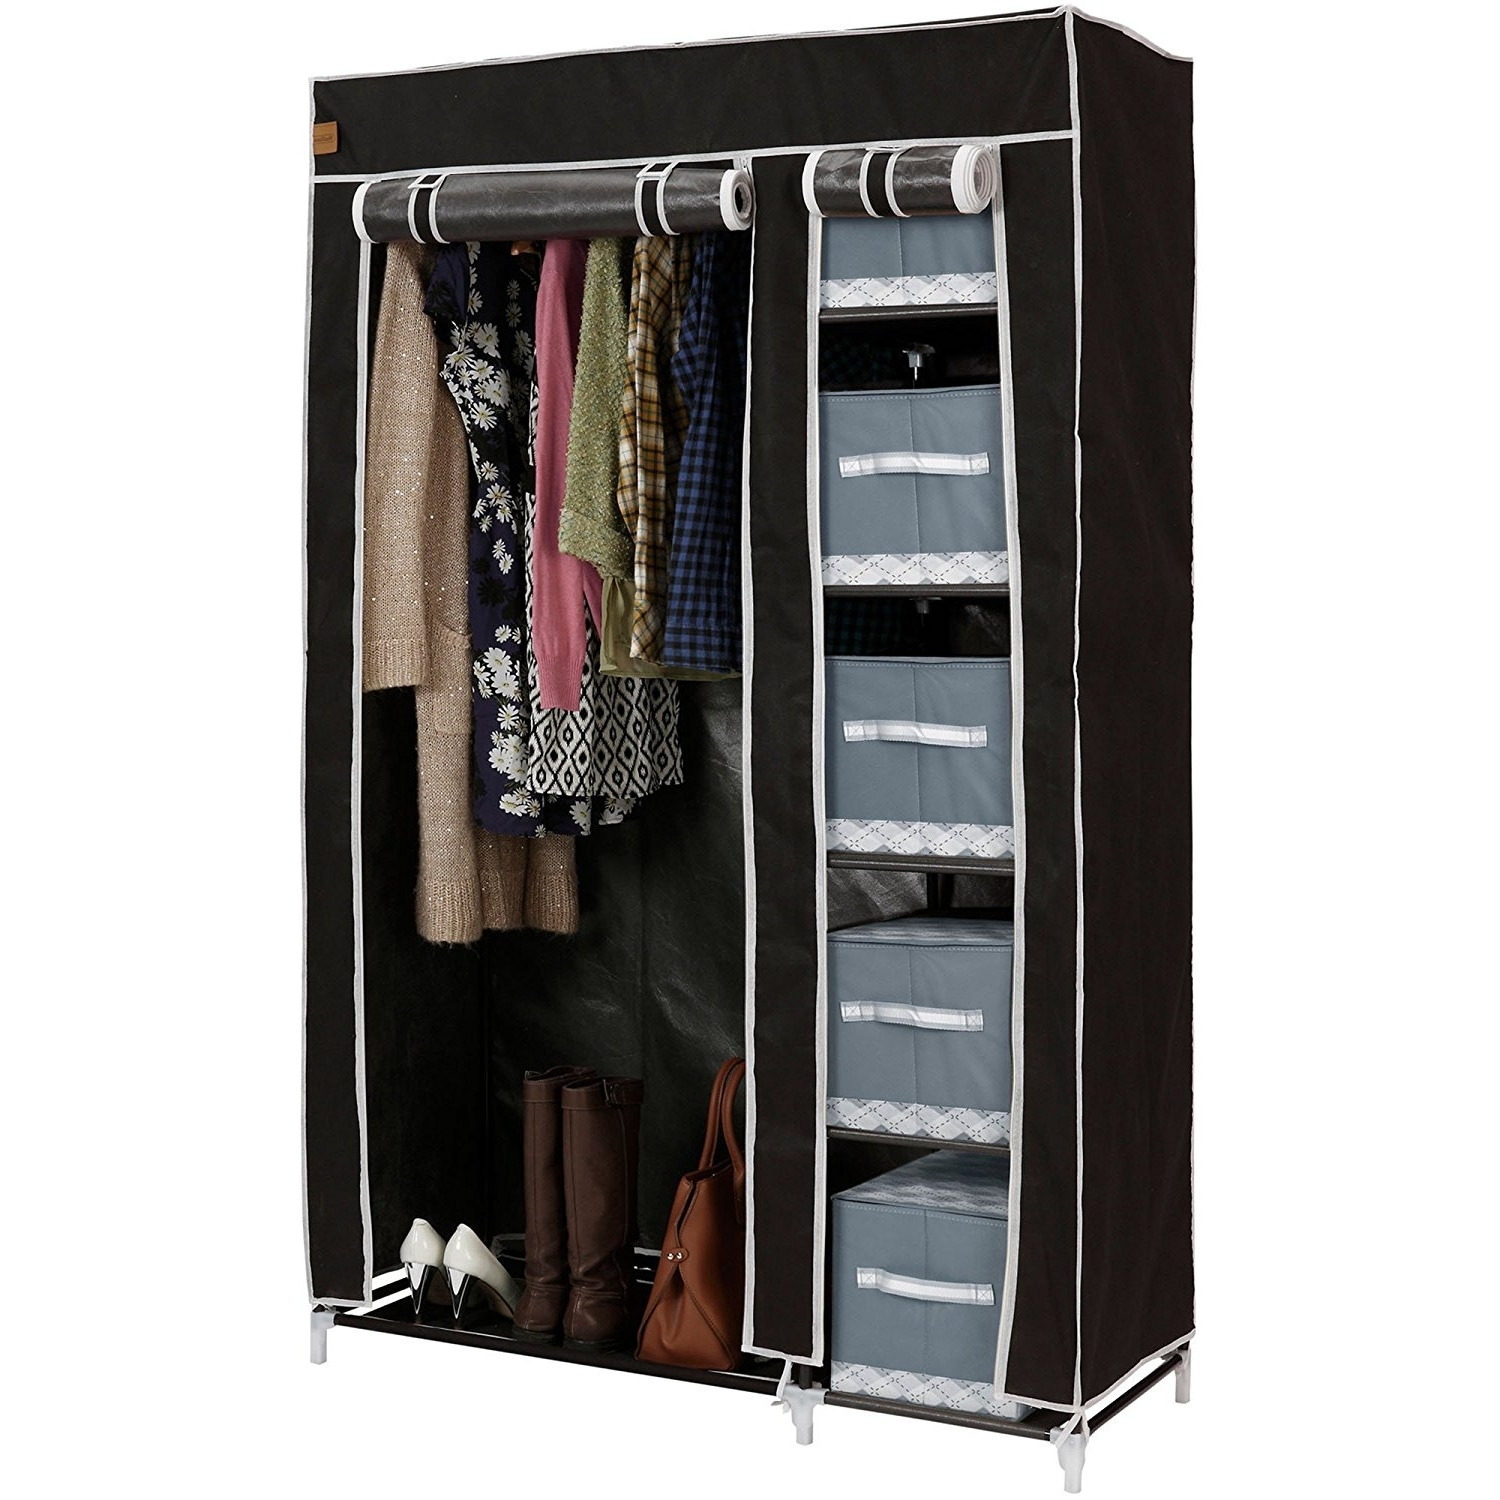 Vonhaus Double Canvas Effect Wardrobe – Clothes Storage Cupboard In Well Known Double Canvas Wardrobes Rail Clothes Storage (View 5 of 15)